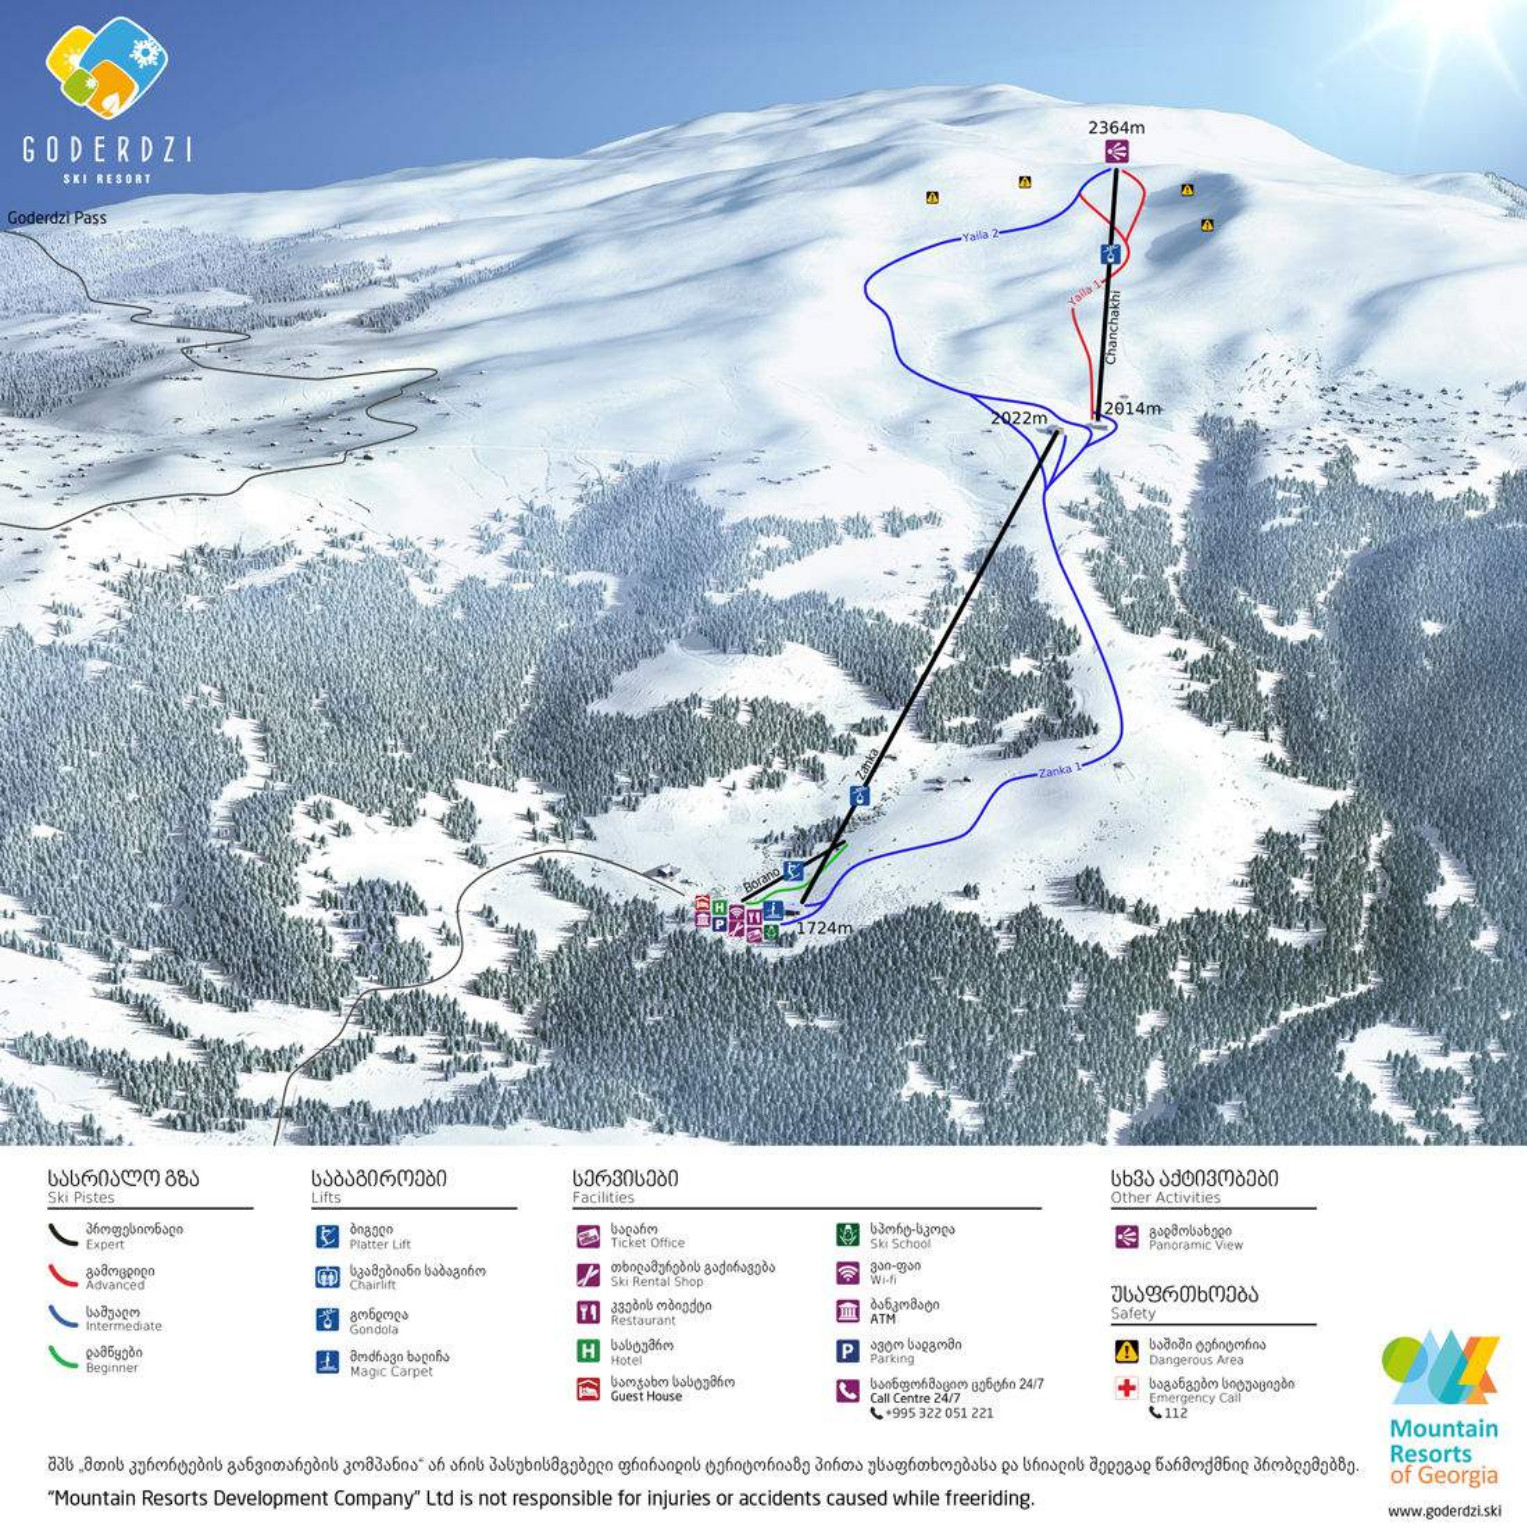 Goderdzi Piste / Trail Map